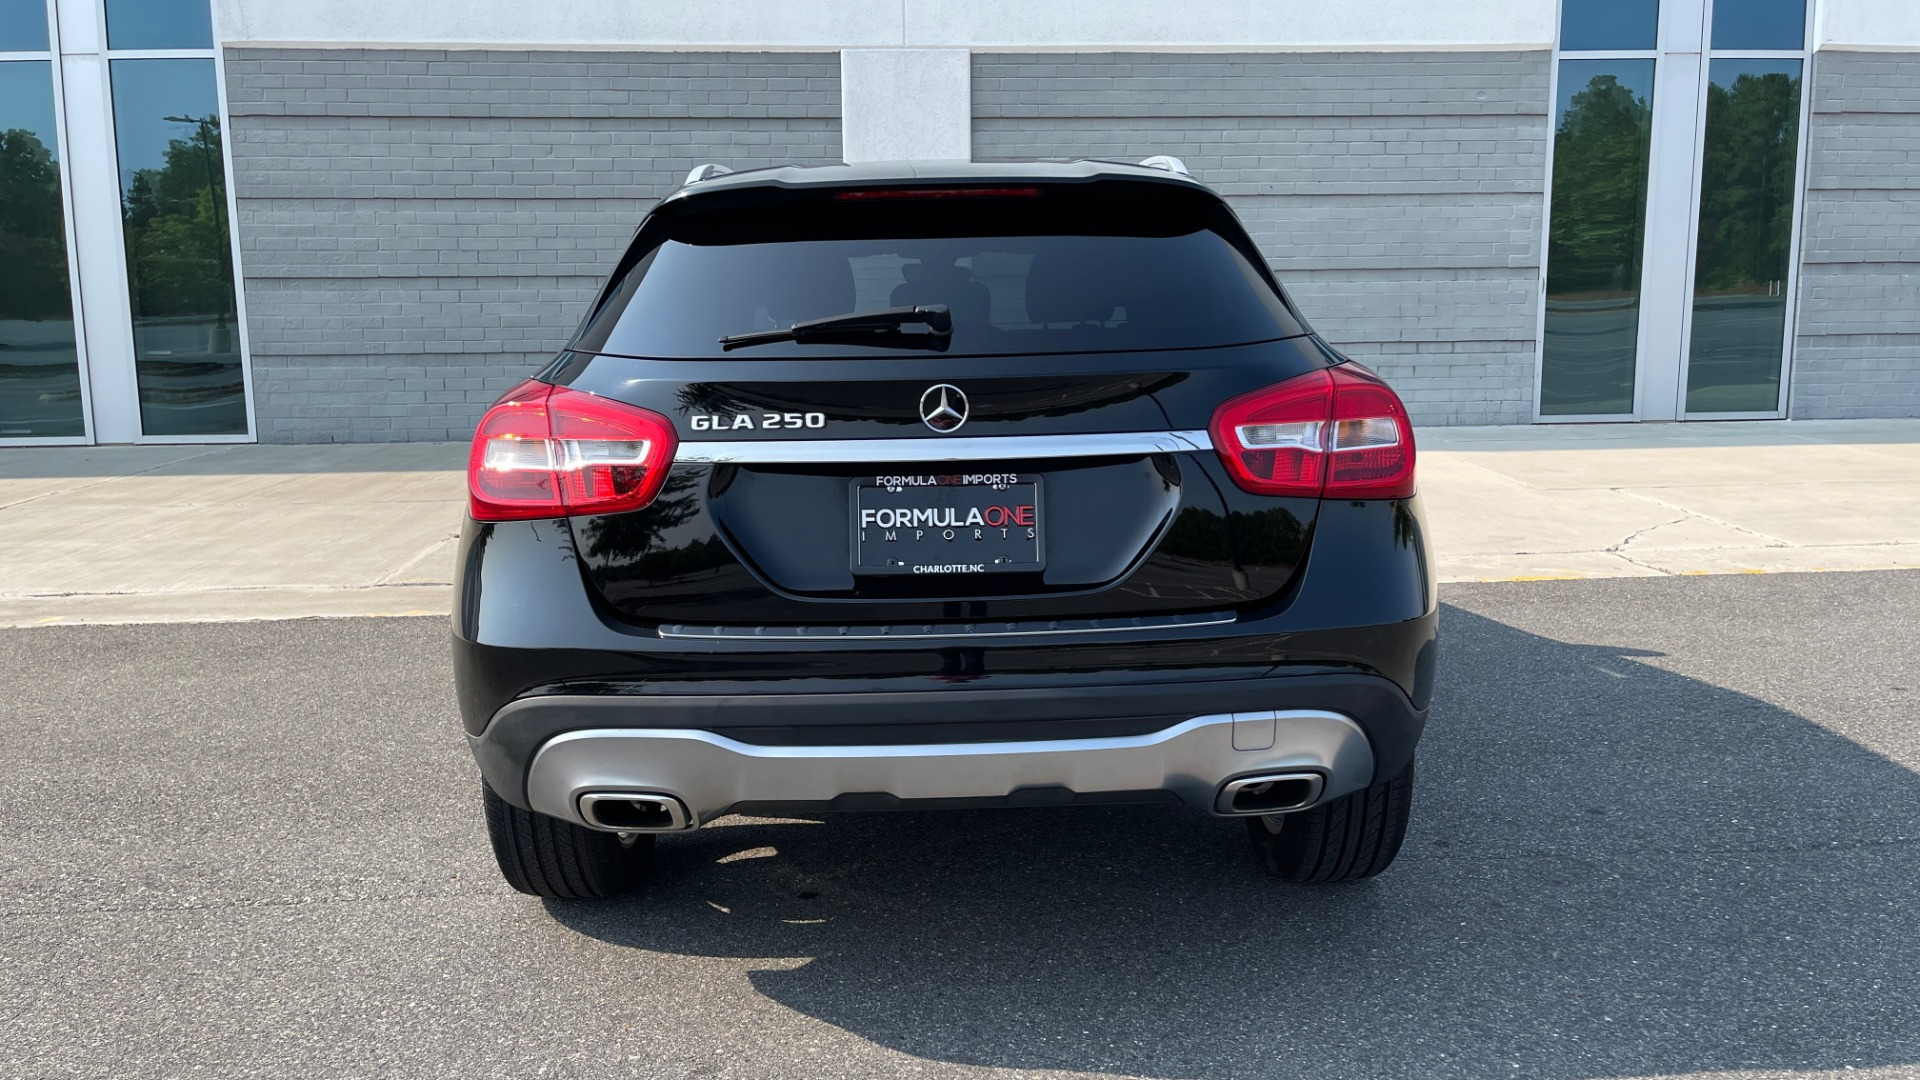 Used 2018 Mercedes-Benz GLA 250 SUV / GARMIN MAP PILOT / 18IN WHEELS / REARVIEW for sale $26,995 at Formula Imports in Charlotte NC 28227 21